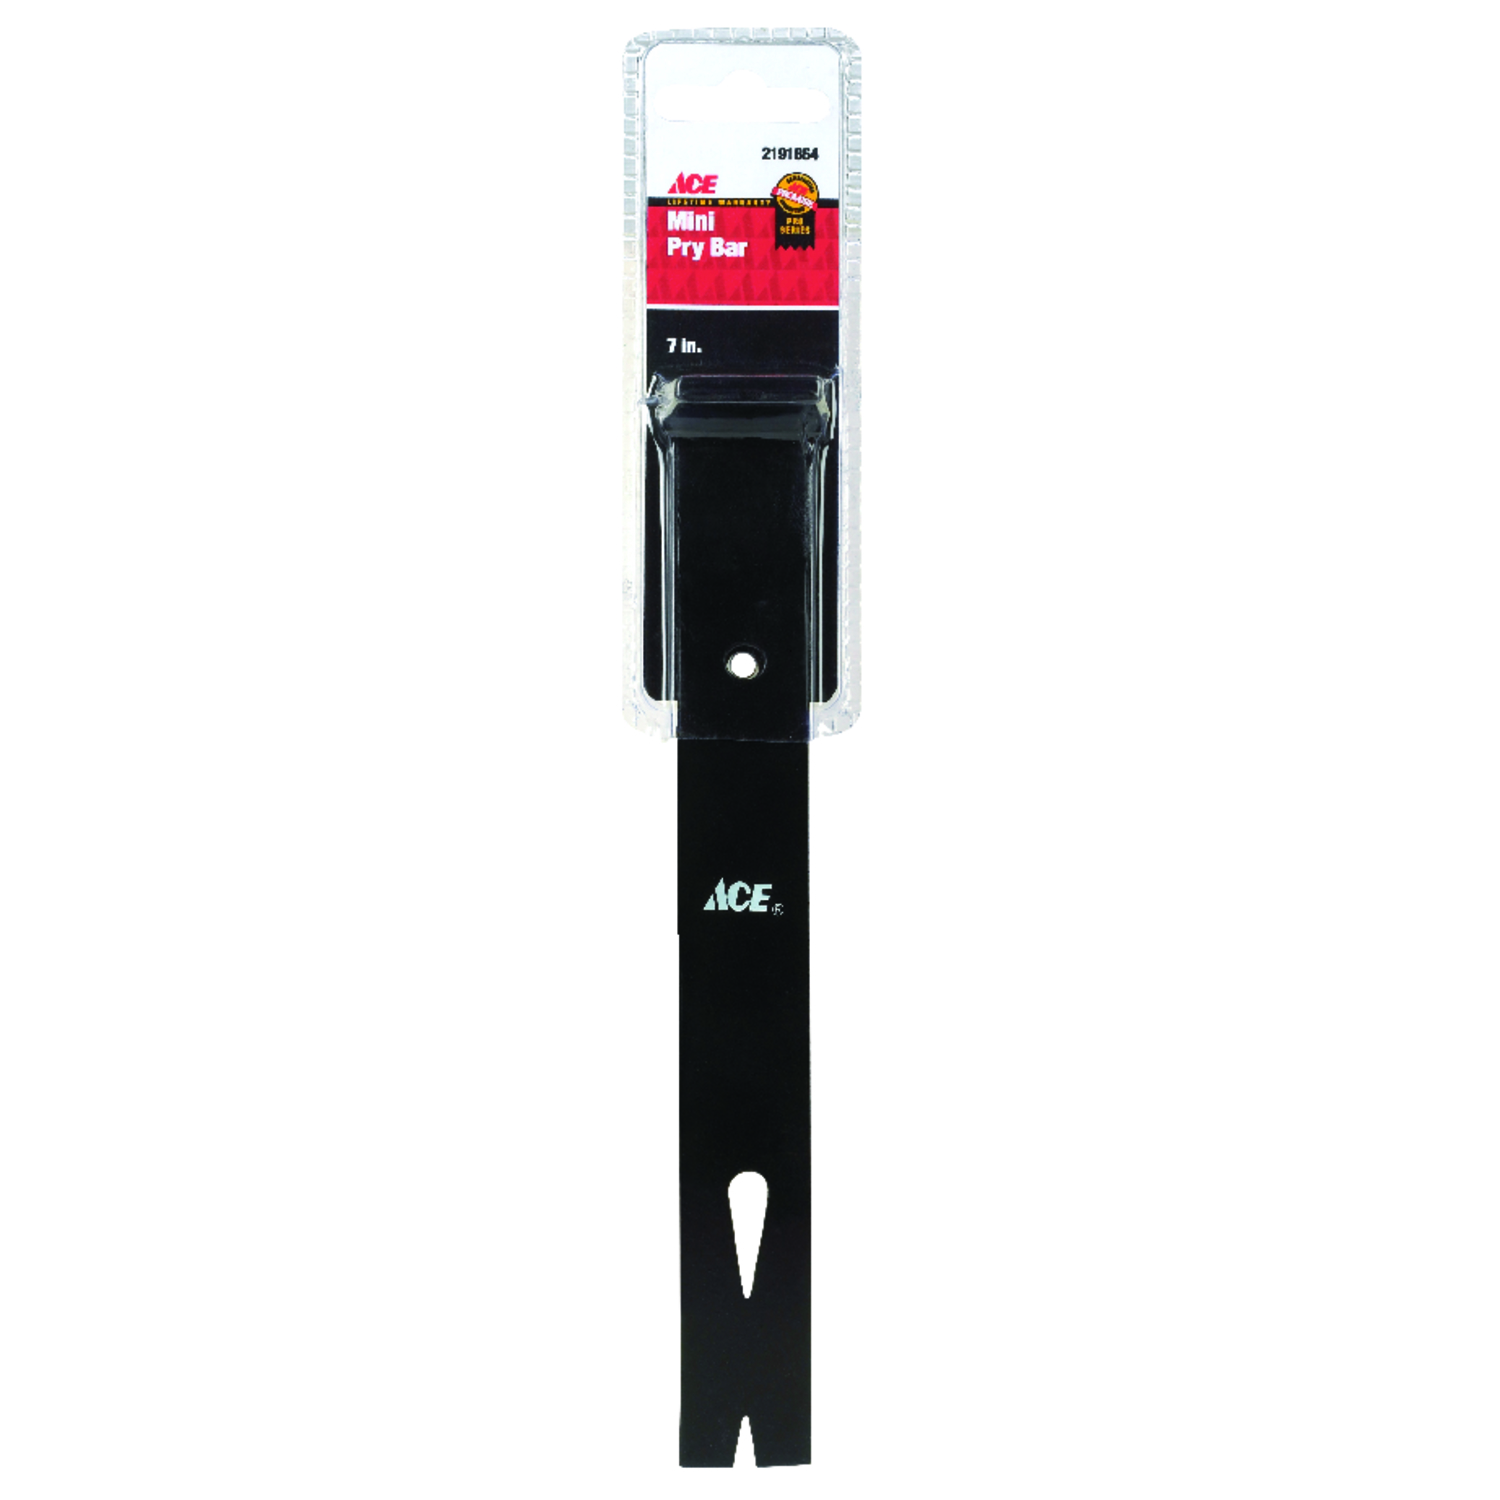 Ace  7 in. L Mini Pry Bar - Nail Puller  Black  1 pc.